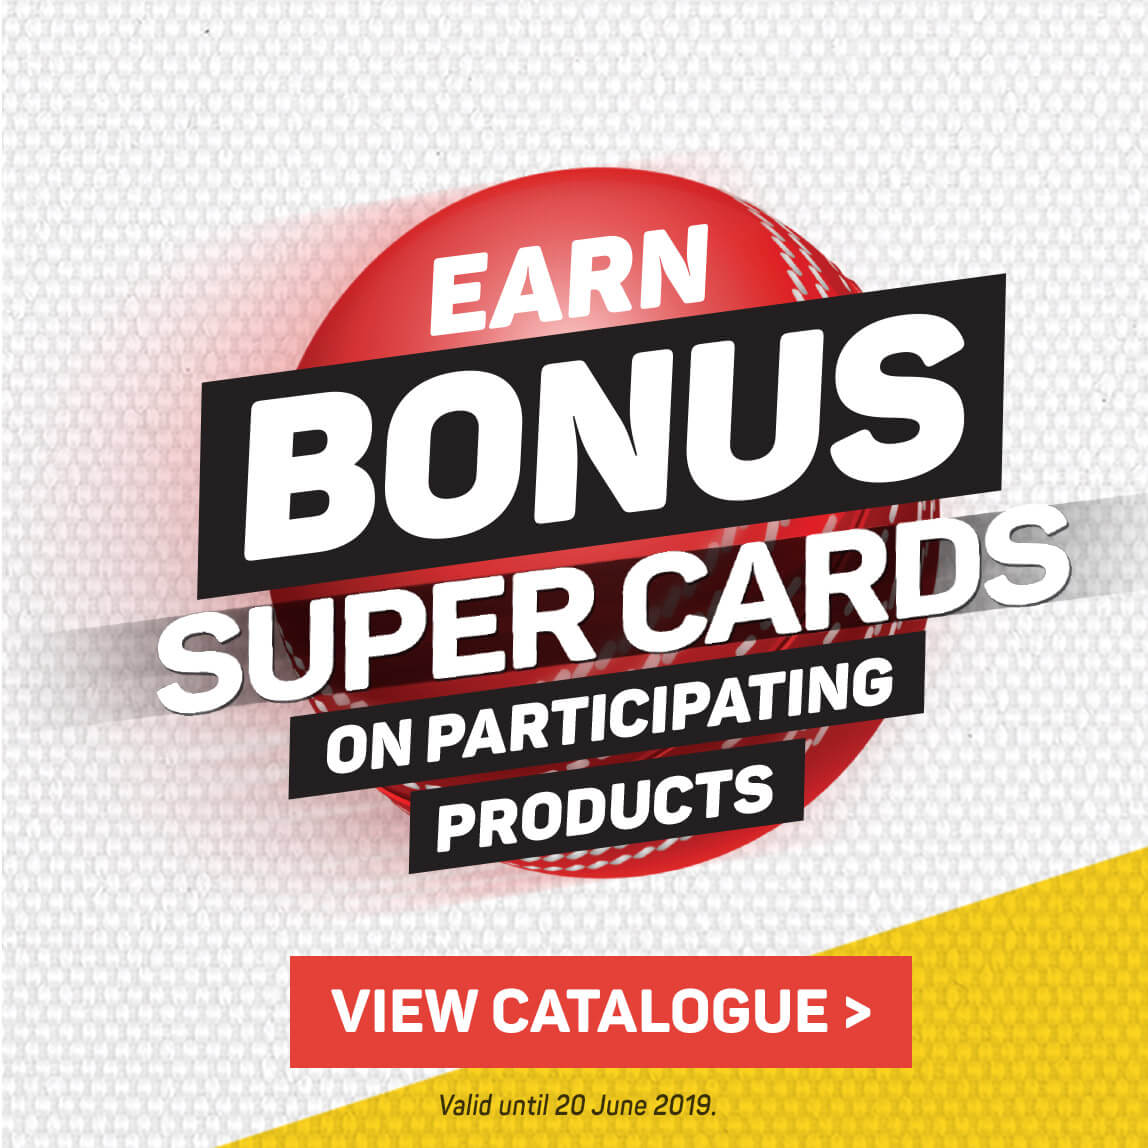 Earn bonus super cards on participating products. View catalogue